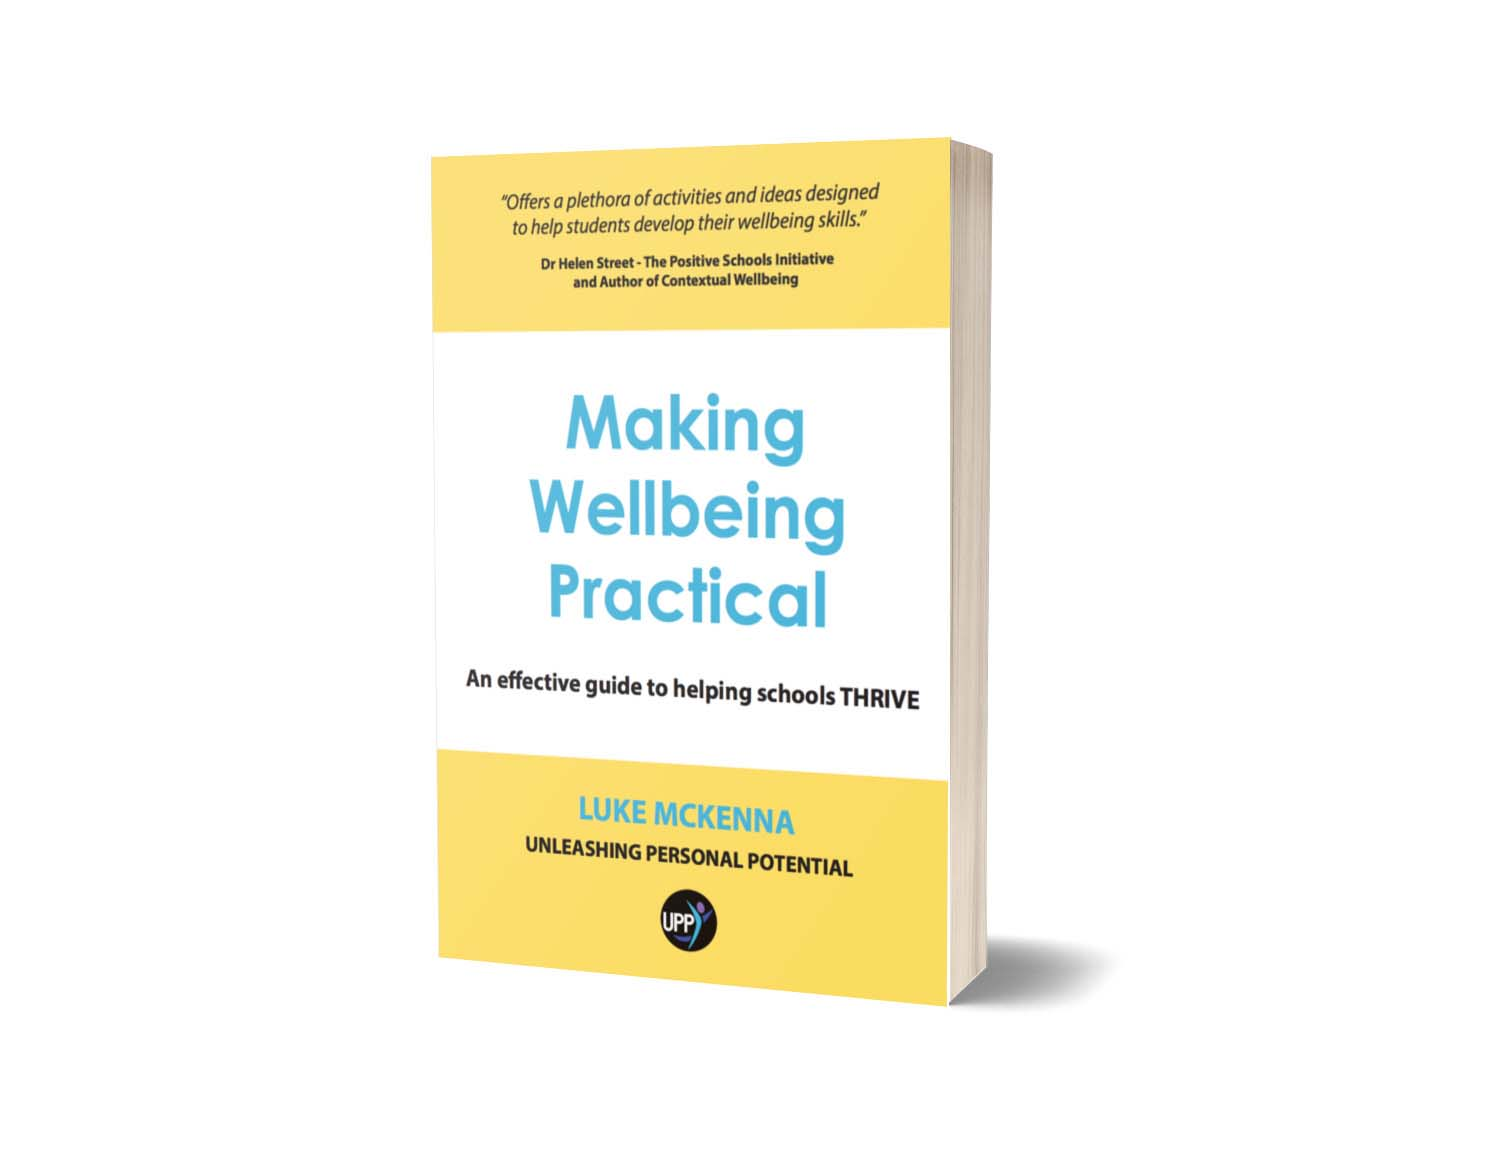 Get the Making Wellbeing Practical Book For Your School